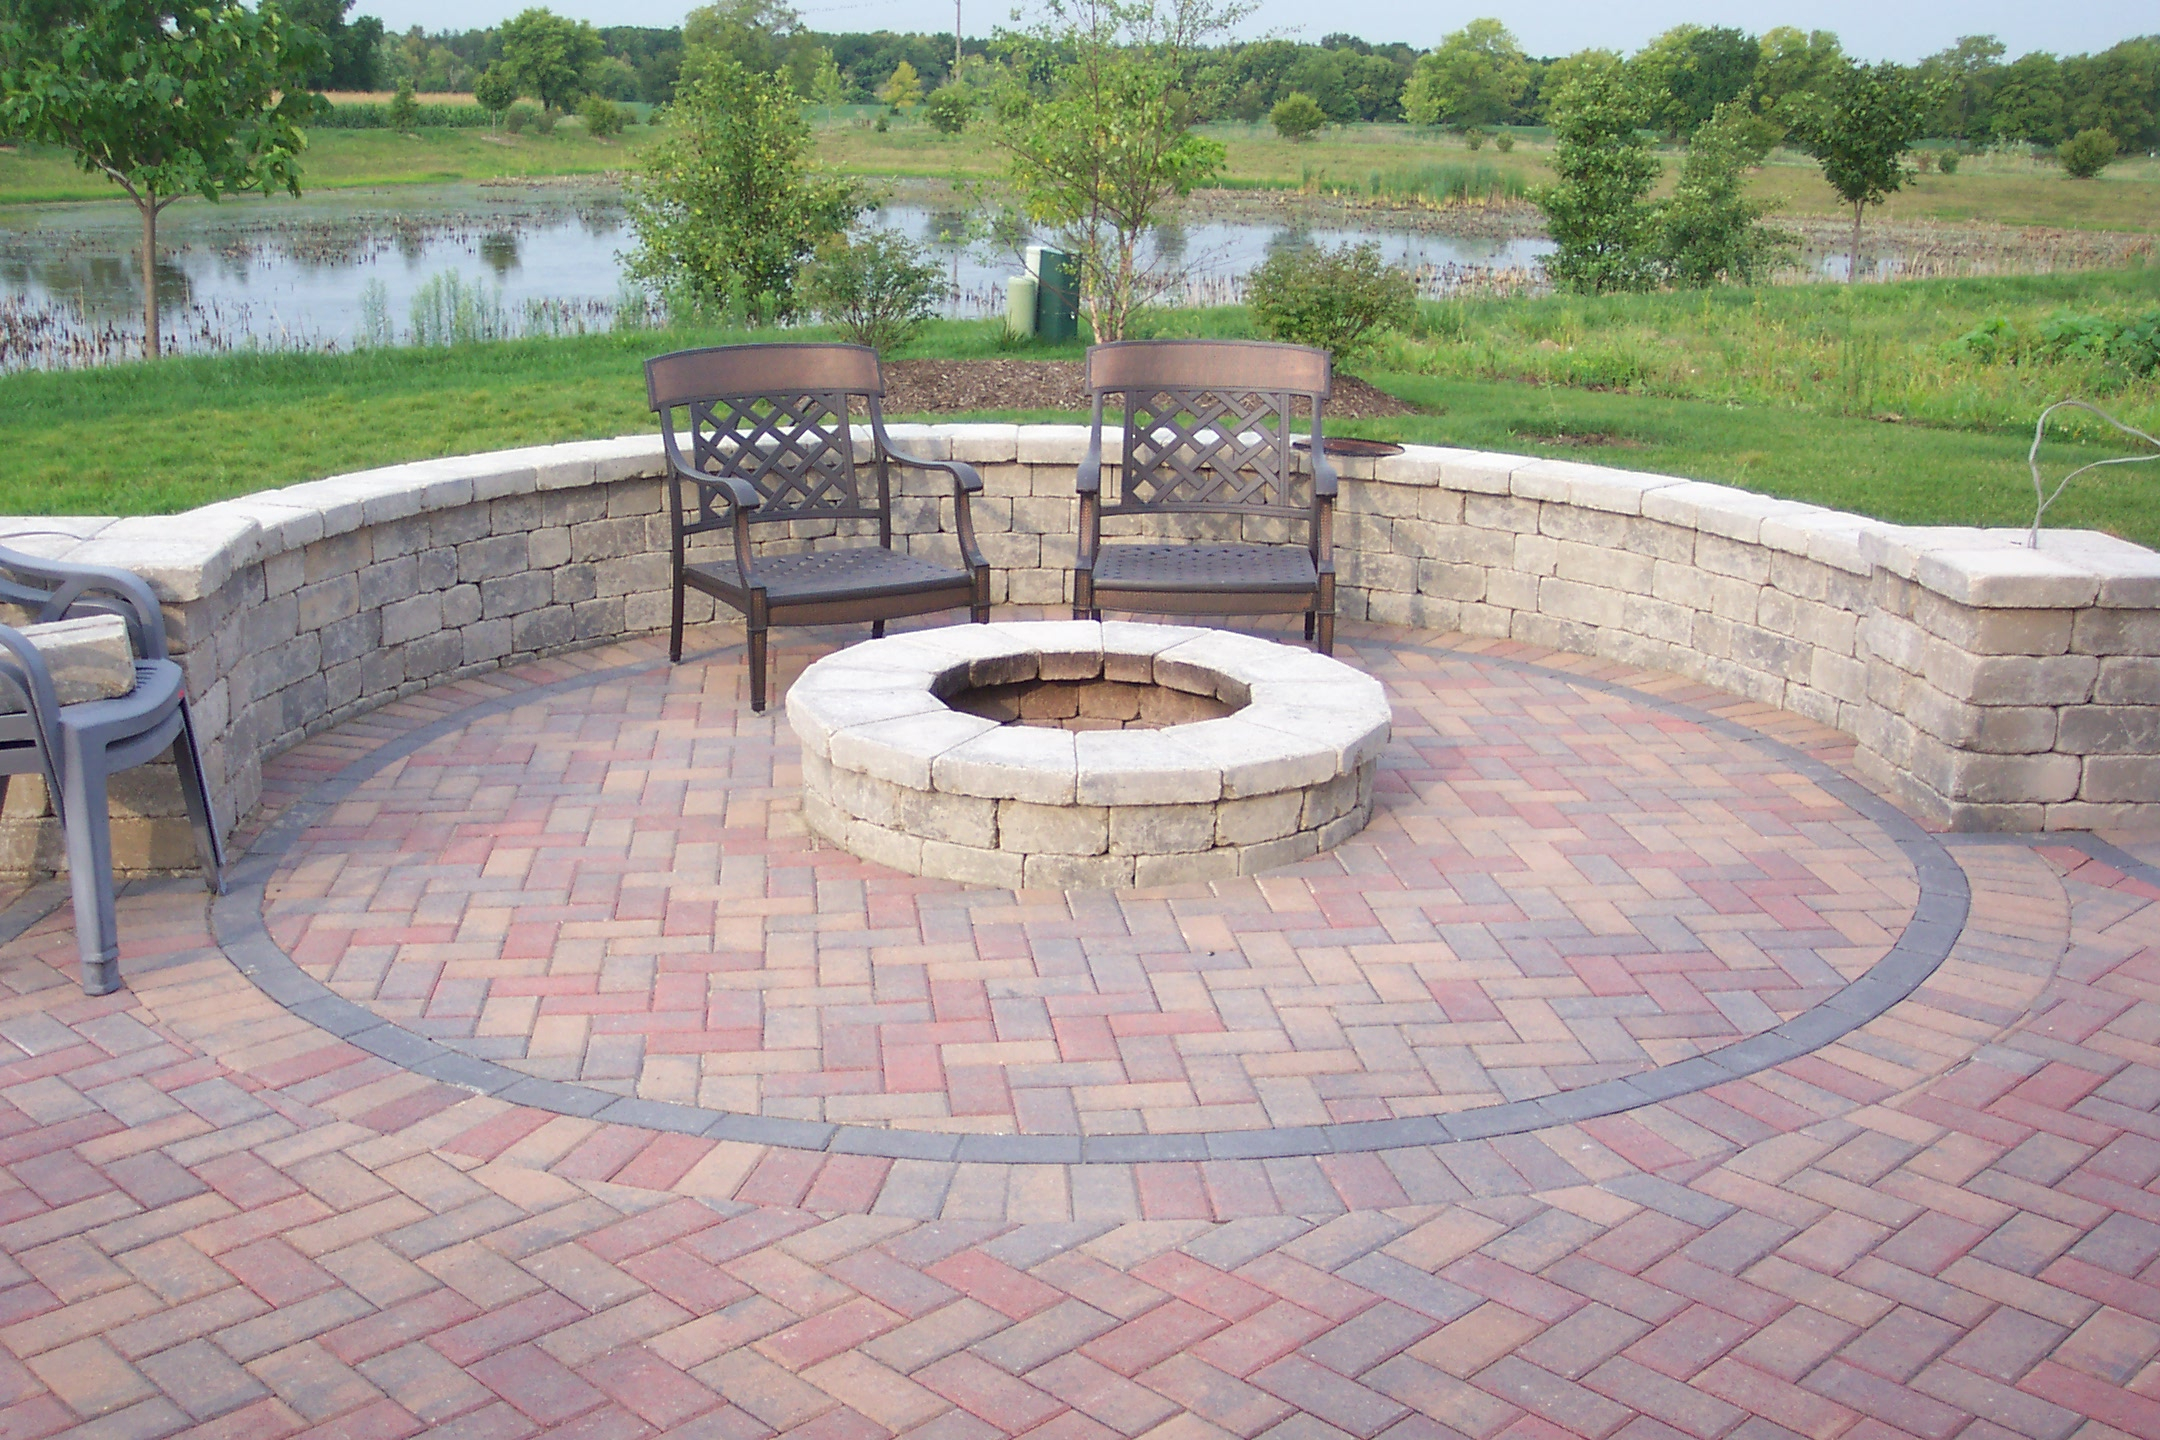 Brick Patio Fire Pit Ideas Design And Ideas with regard to size 2160 X 1440